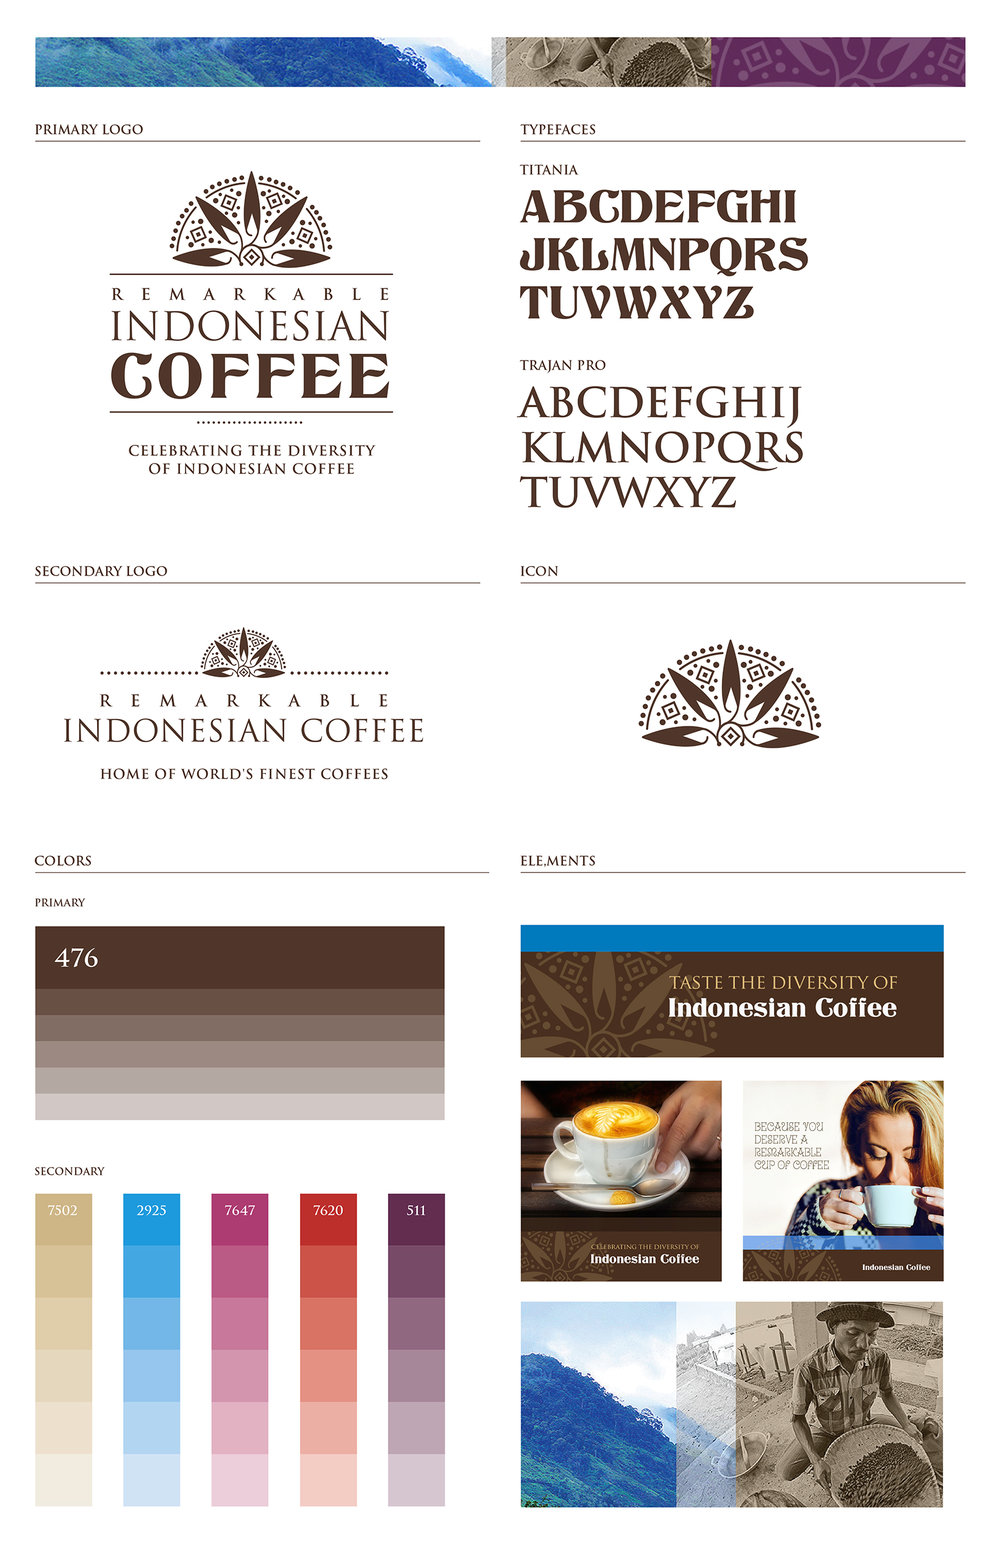 indonesian_coffee_branding_guide.jpg